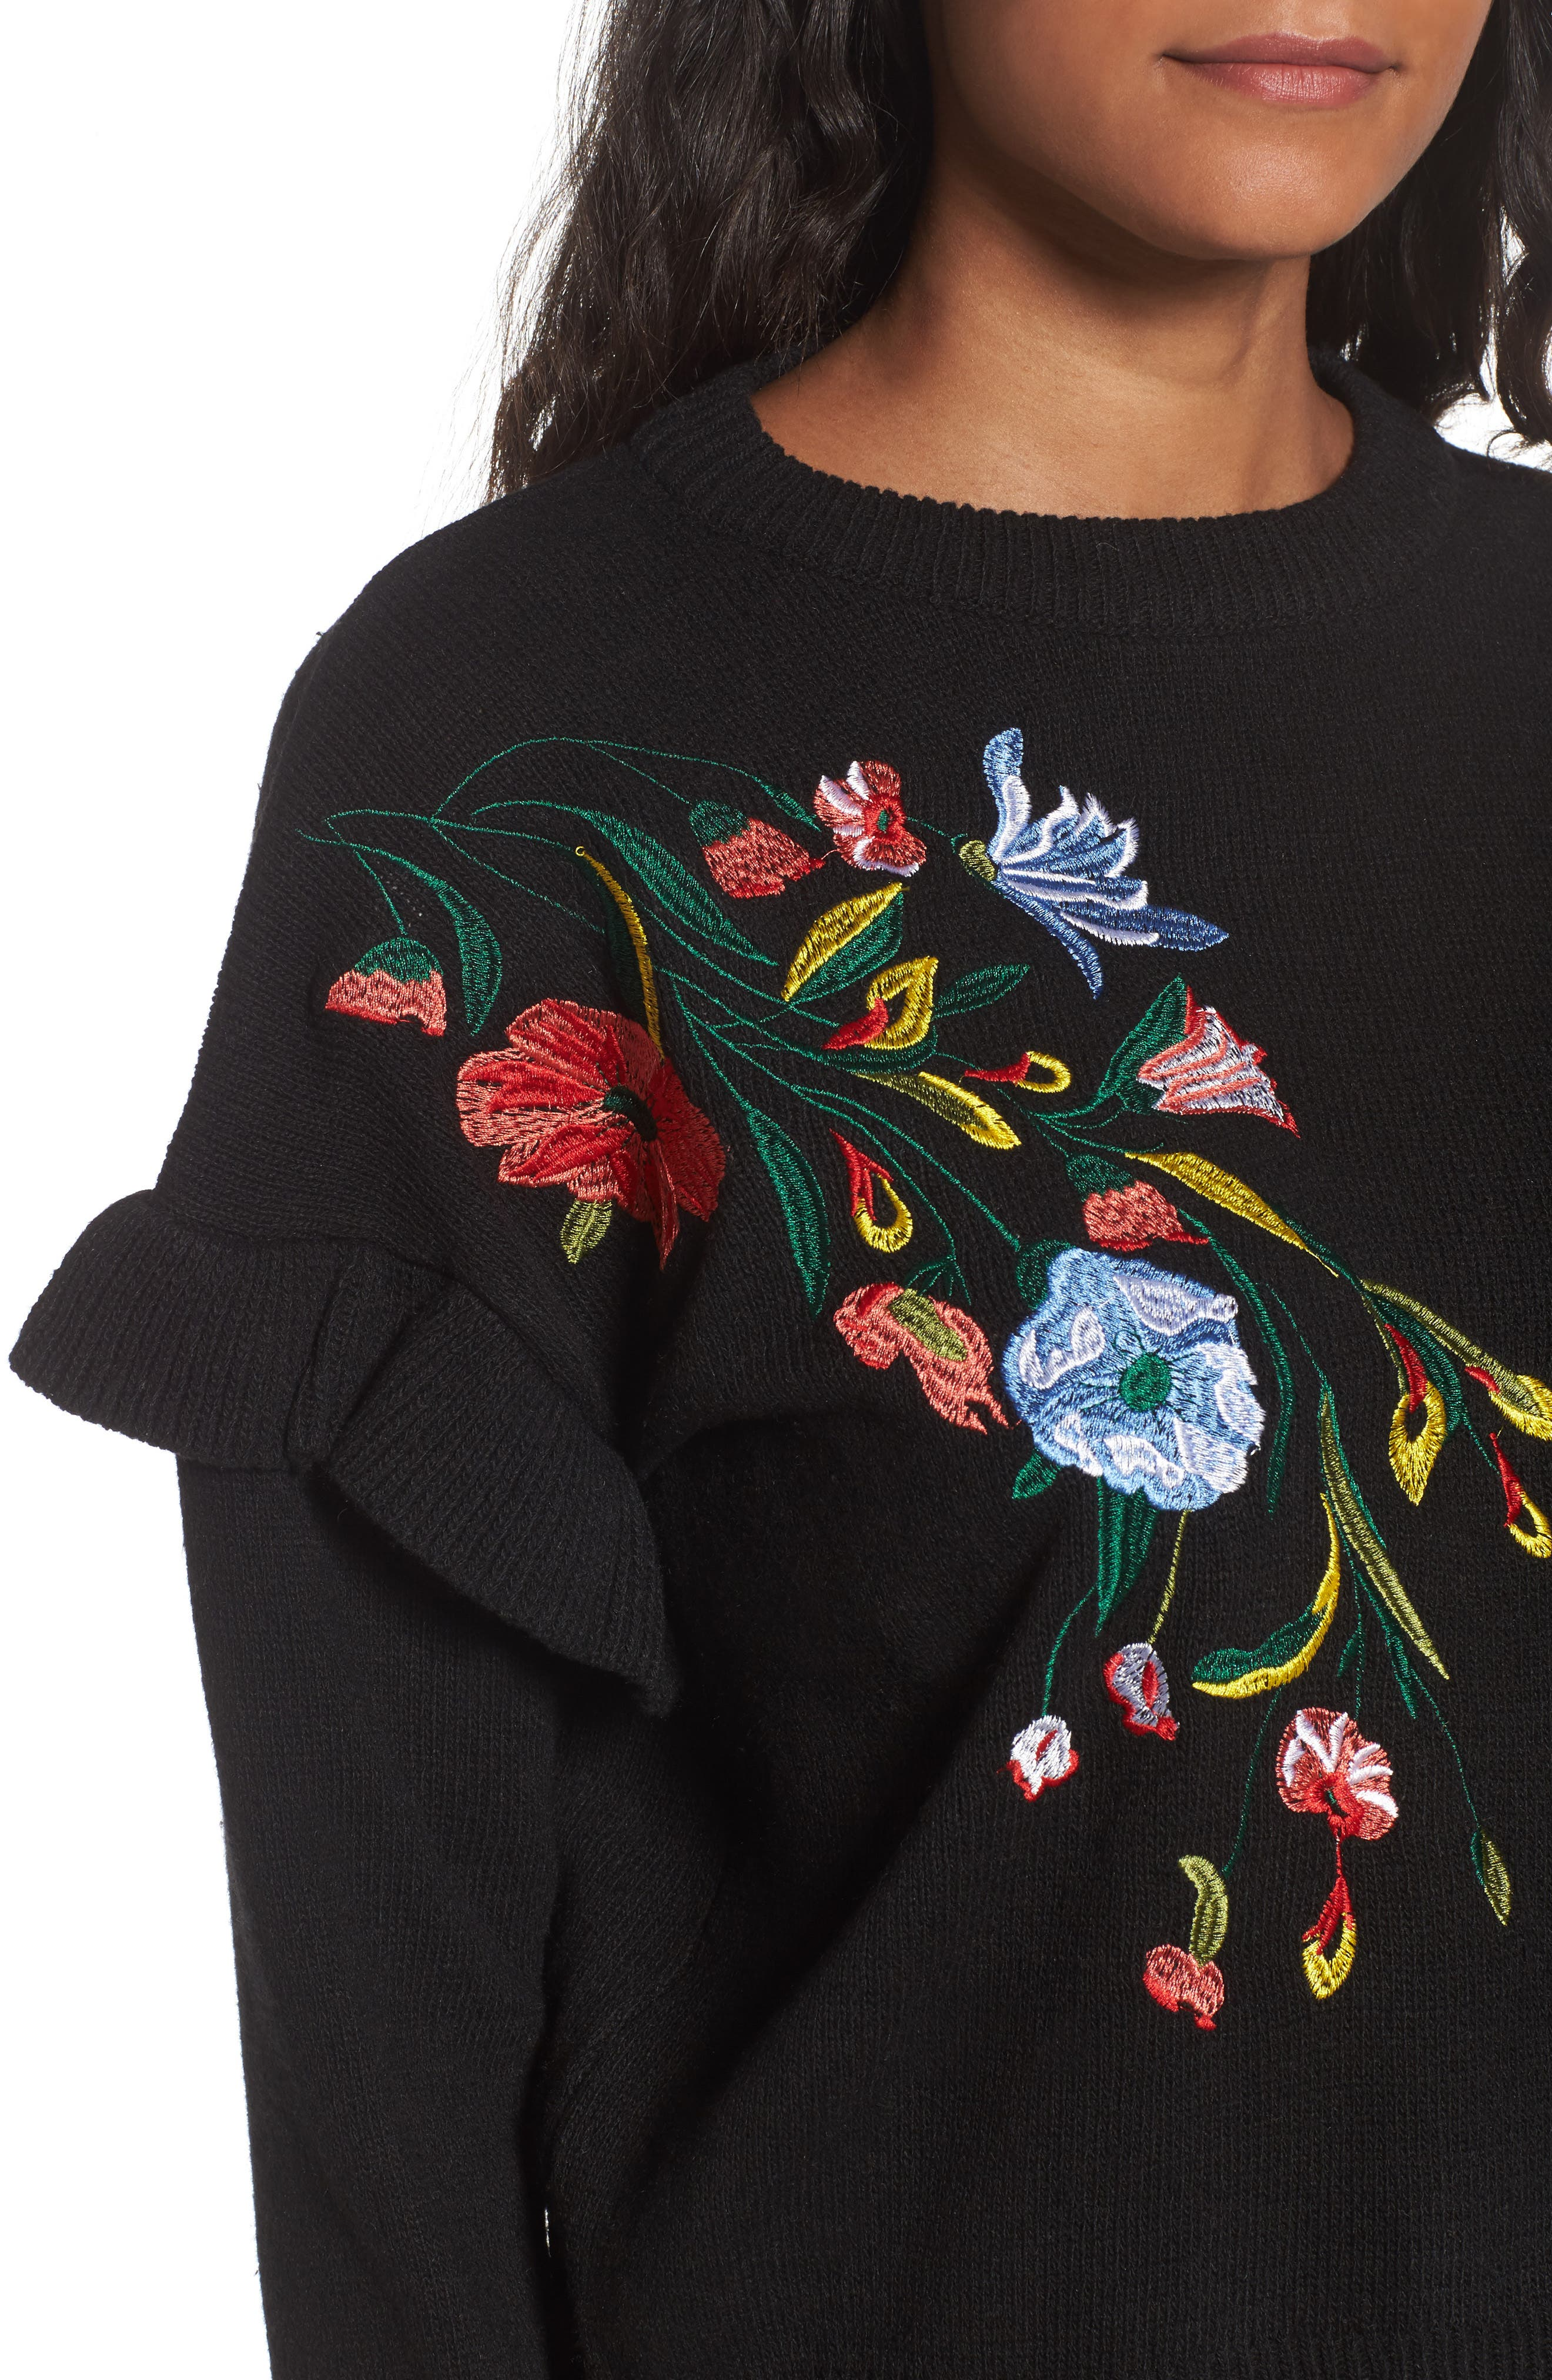 Ruffle Sleeve Embroidered Sweater,                             Alternate thumbnail 4, color,                             001